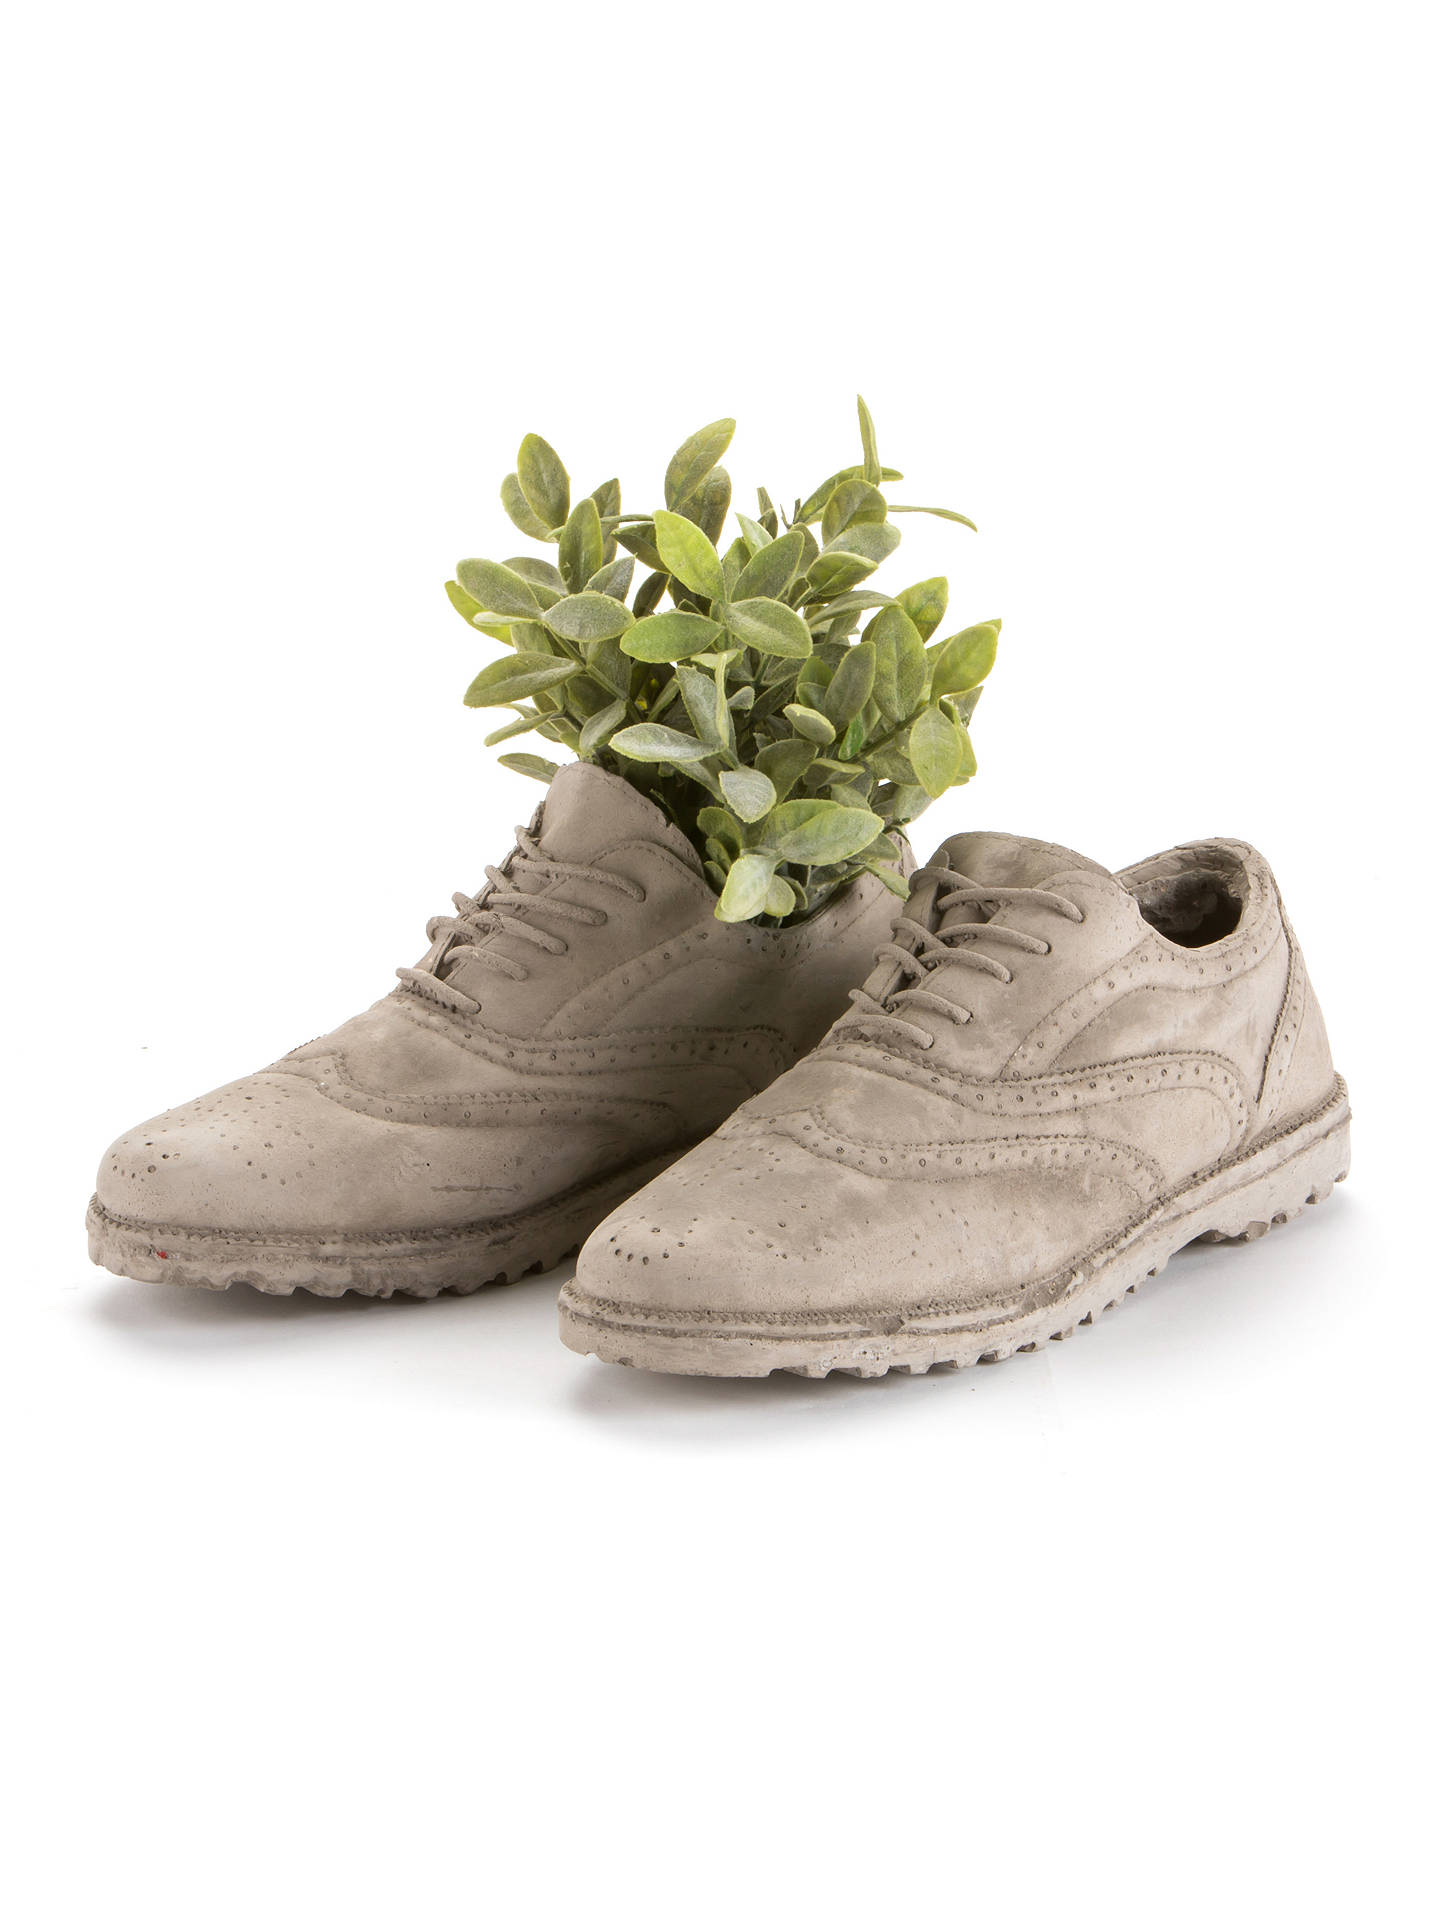 BuySeletti Concrete Chaussures Online at johnlewis.com